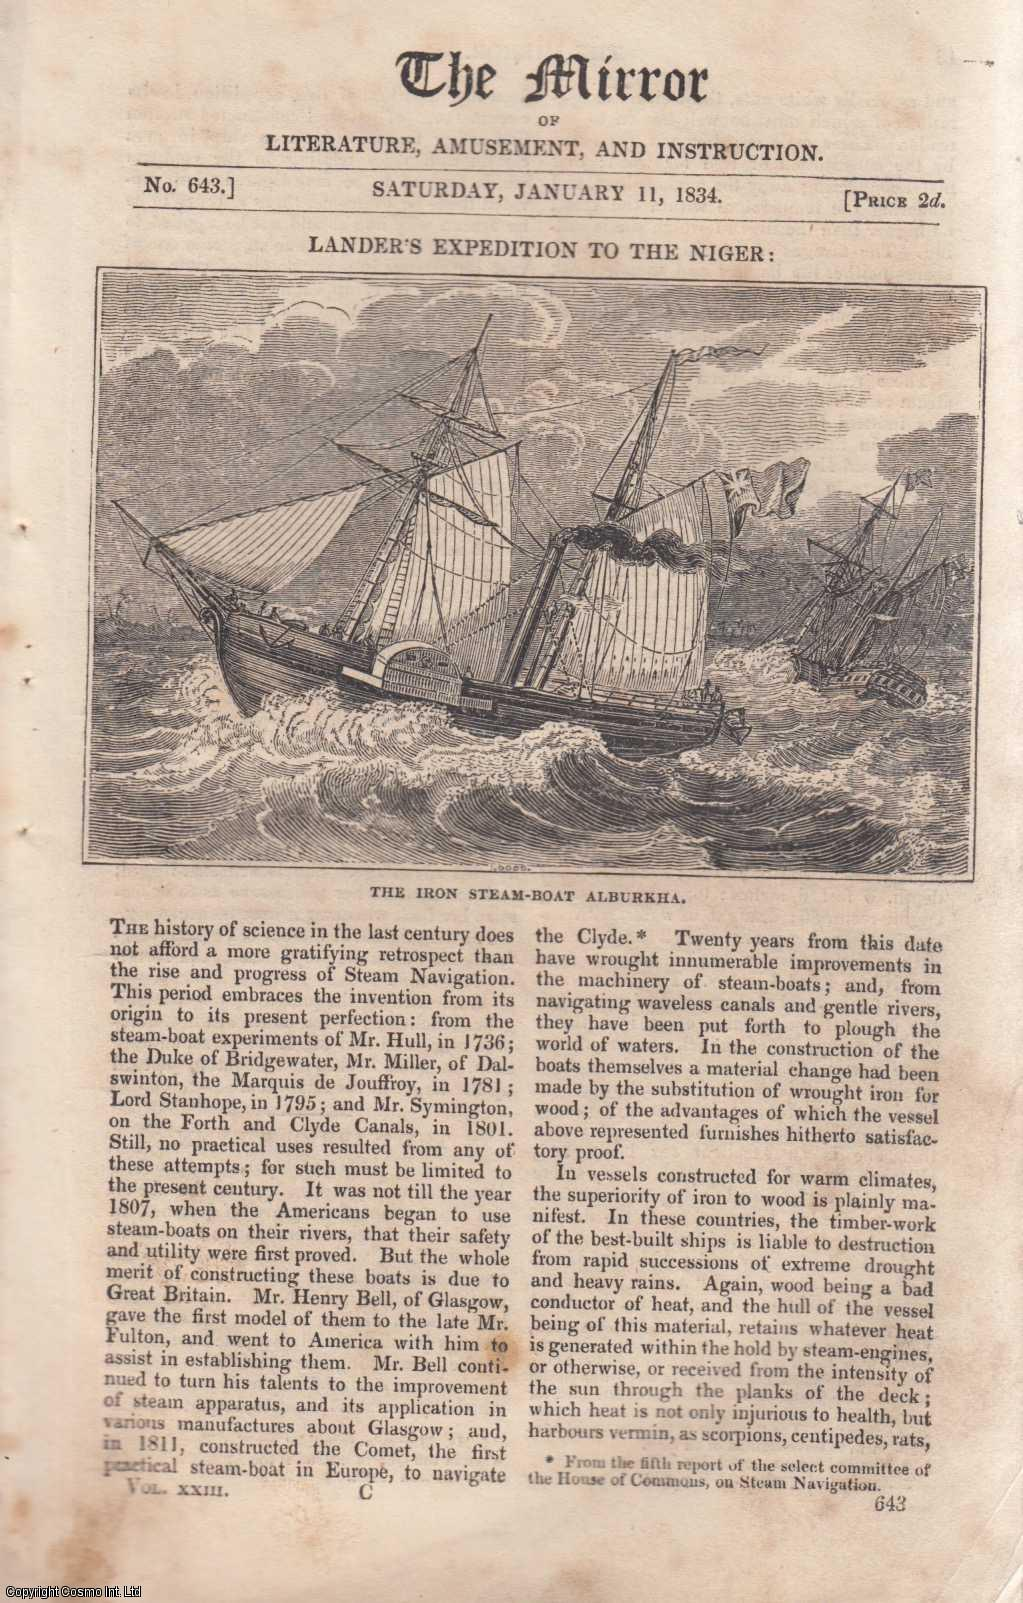 THE MIRROR - Lander's Expedition to the Niger: The Iron Steam Boat Alburkha. A complete rare weekly issue of the Mirror of Literature, Amusement, and Instruction, 1834.